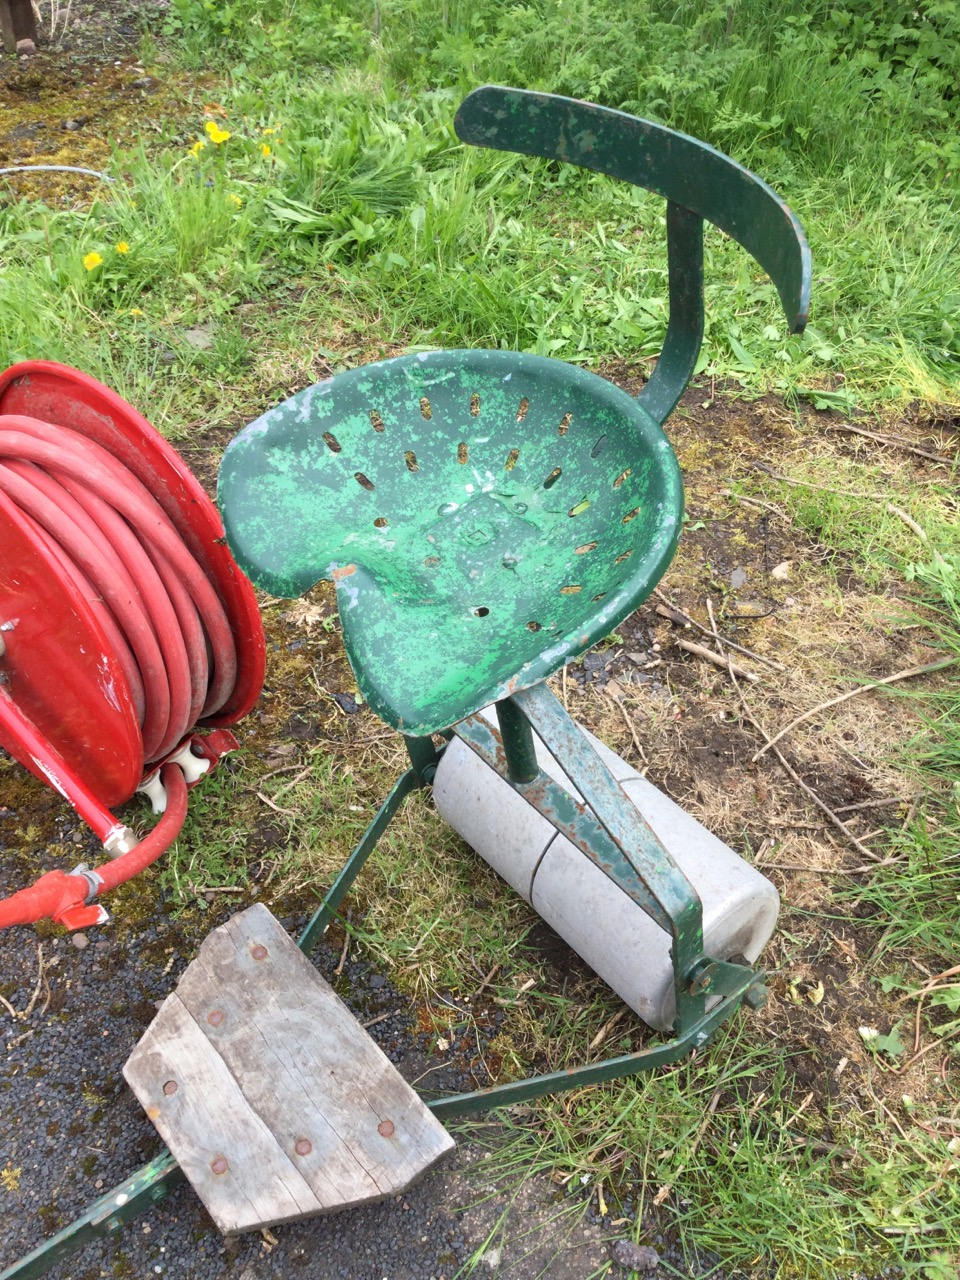 A firehose on reel complete with nozzle with tap; and a ride-on garden roller with tractor type seat - Image 3 of 3